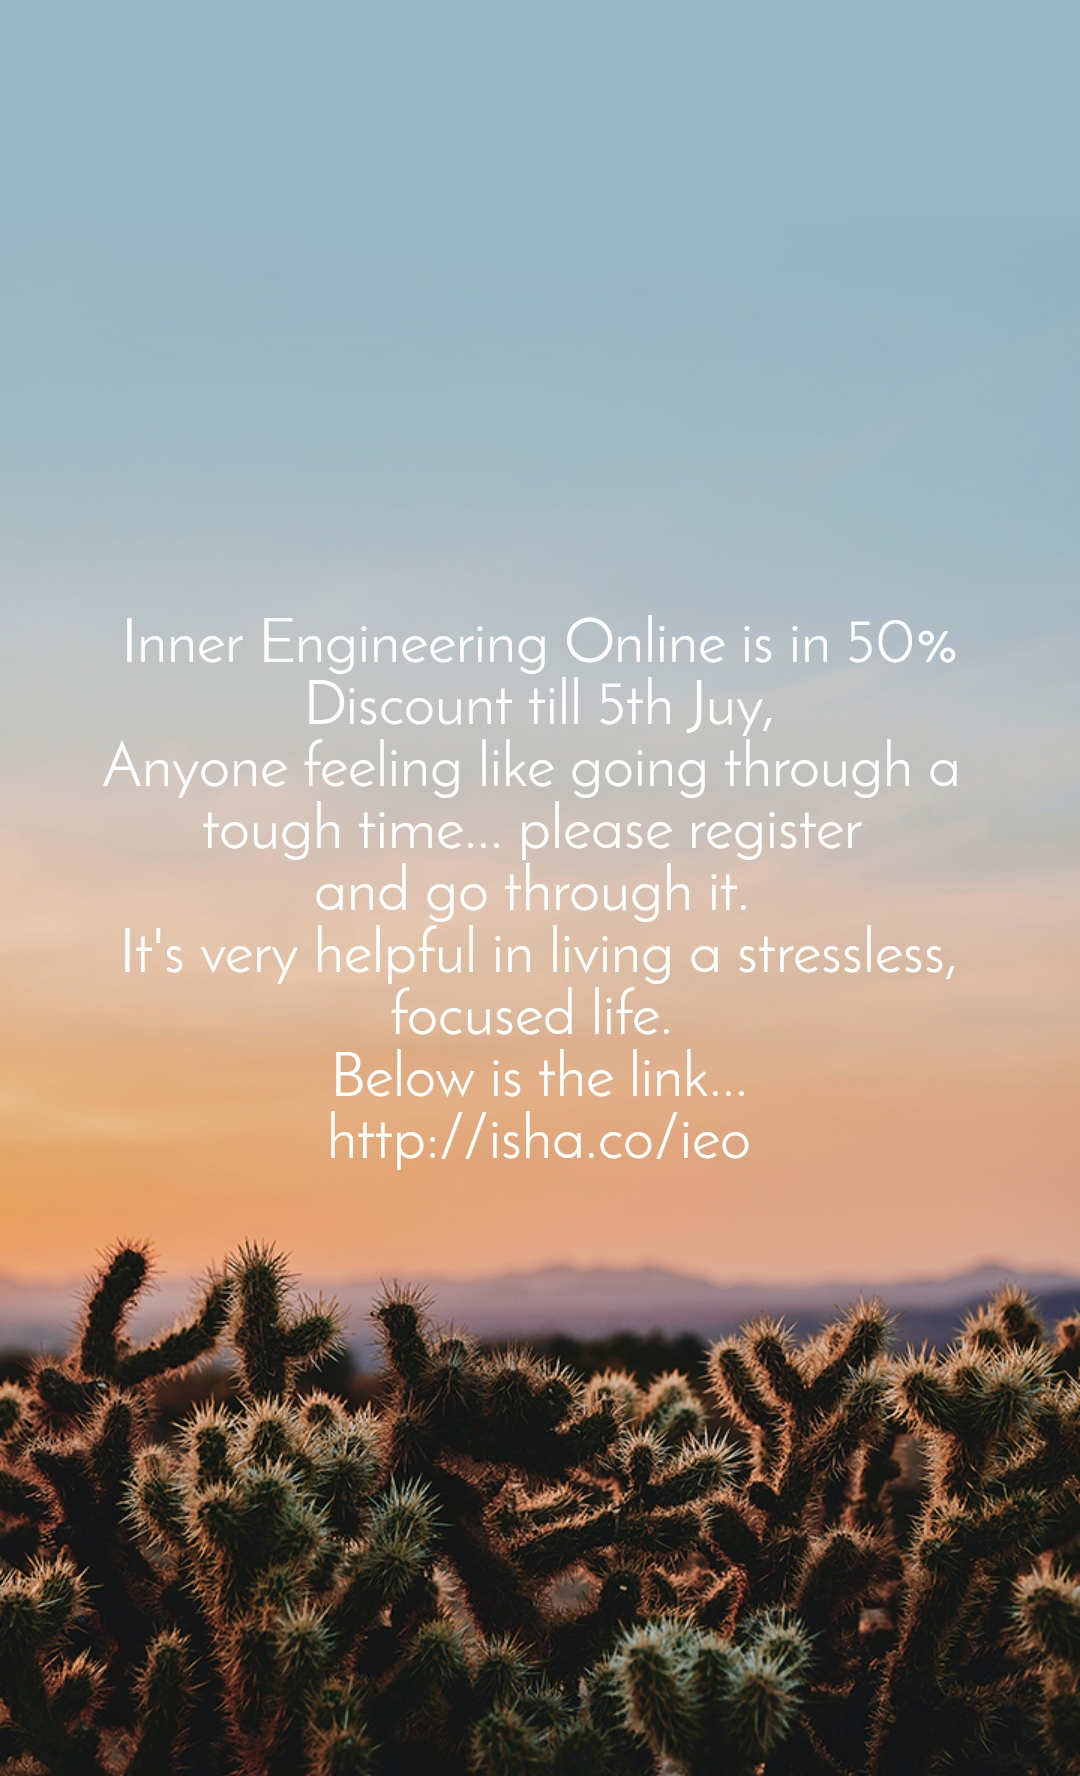 Inner Engineering Online is in 50% Discount till 5th Juy, Anyone feeling like going through a  tough time... please register  and go through it.  It's very helpful in living a stressless, focused life.  Below is the link... http://isha.co/ieo